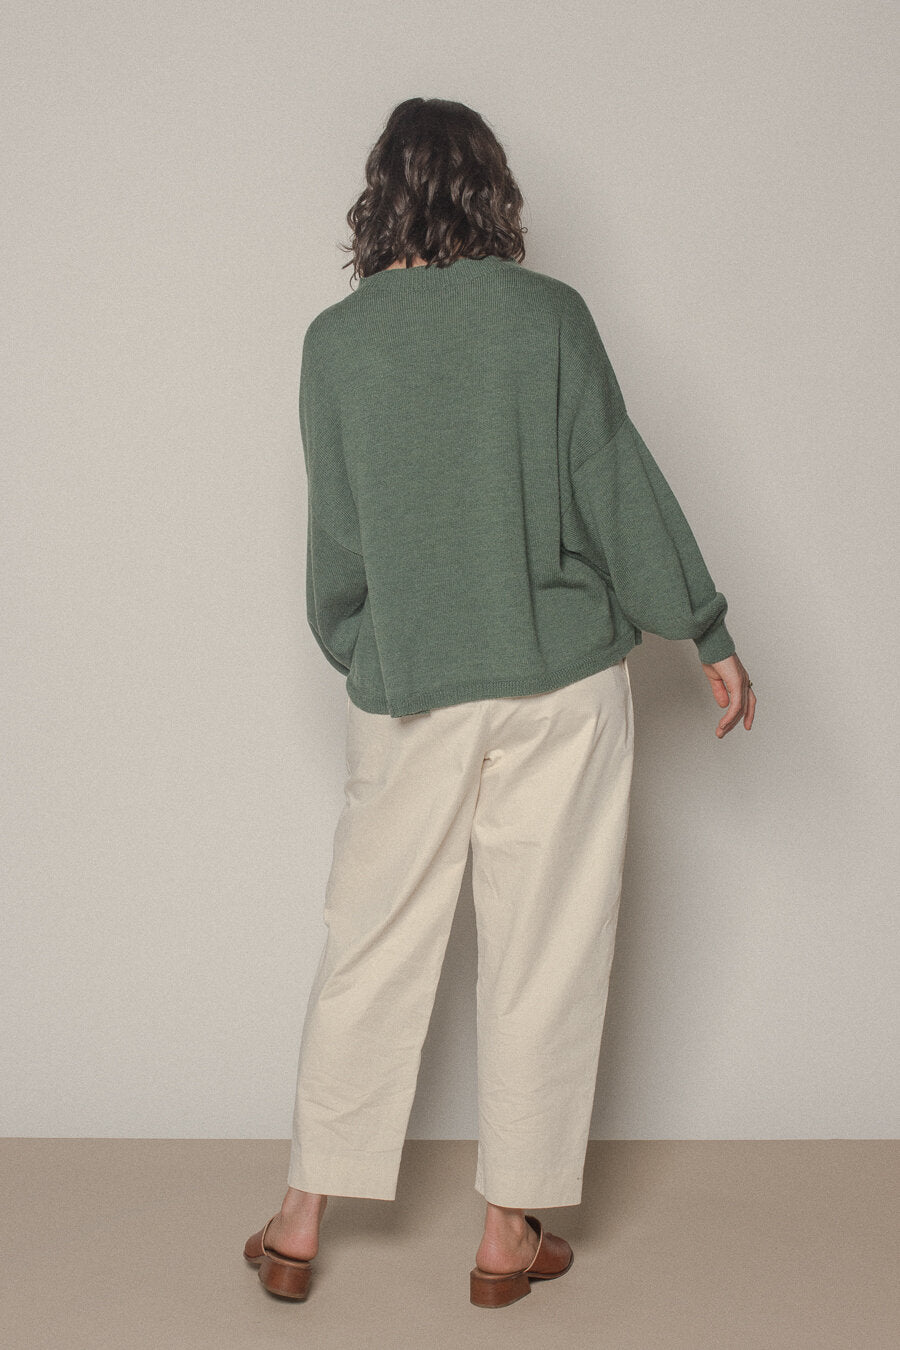 francie : cirrus knit in sage green